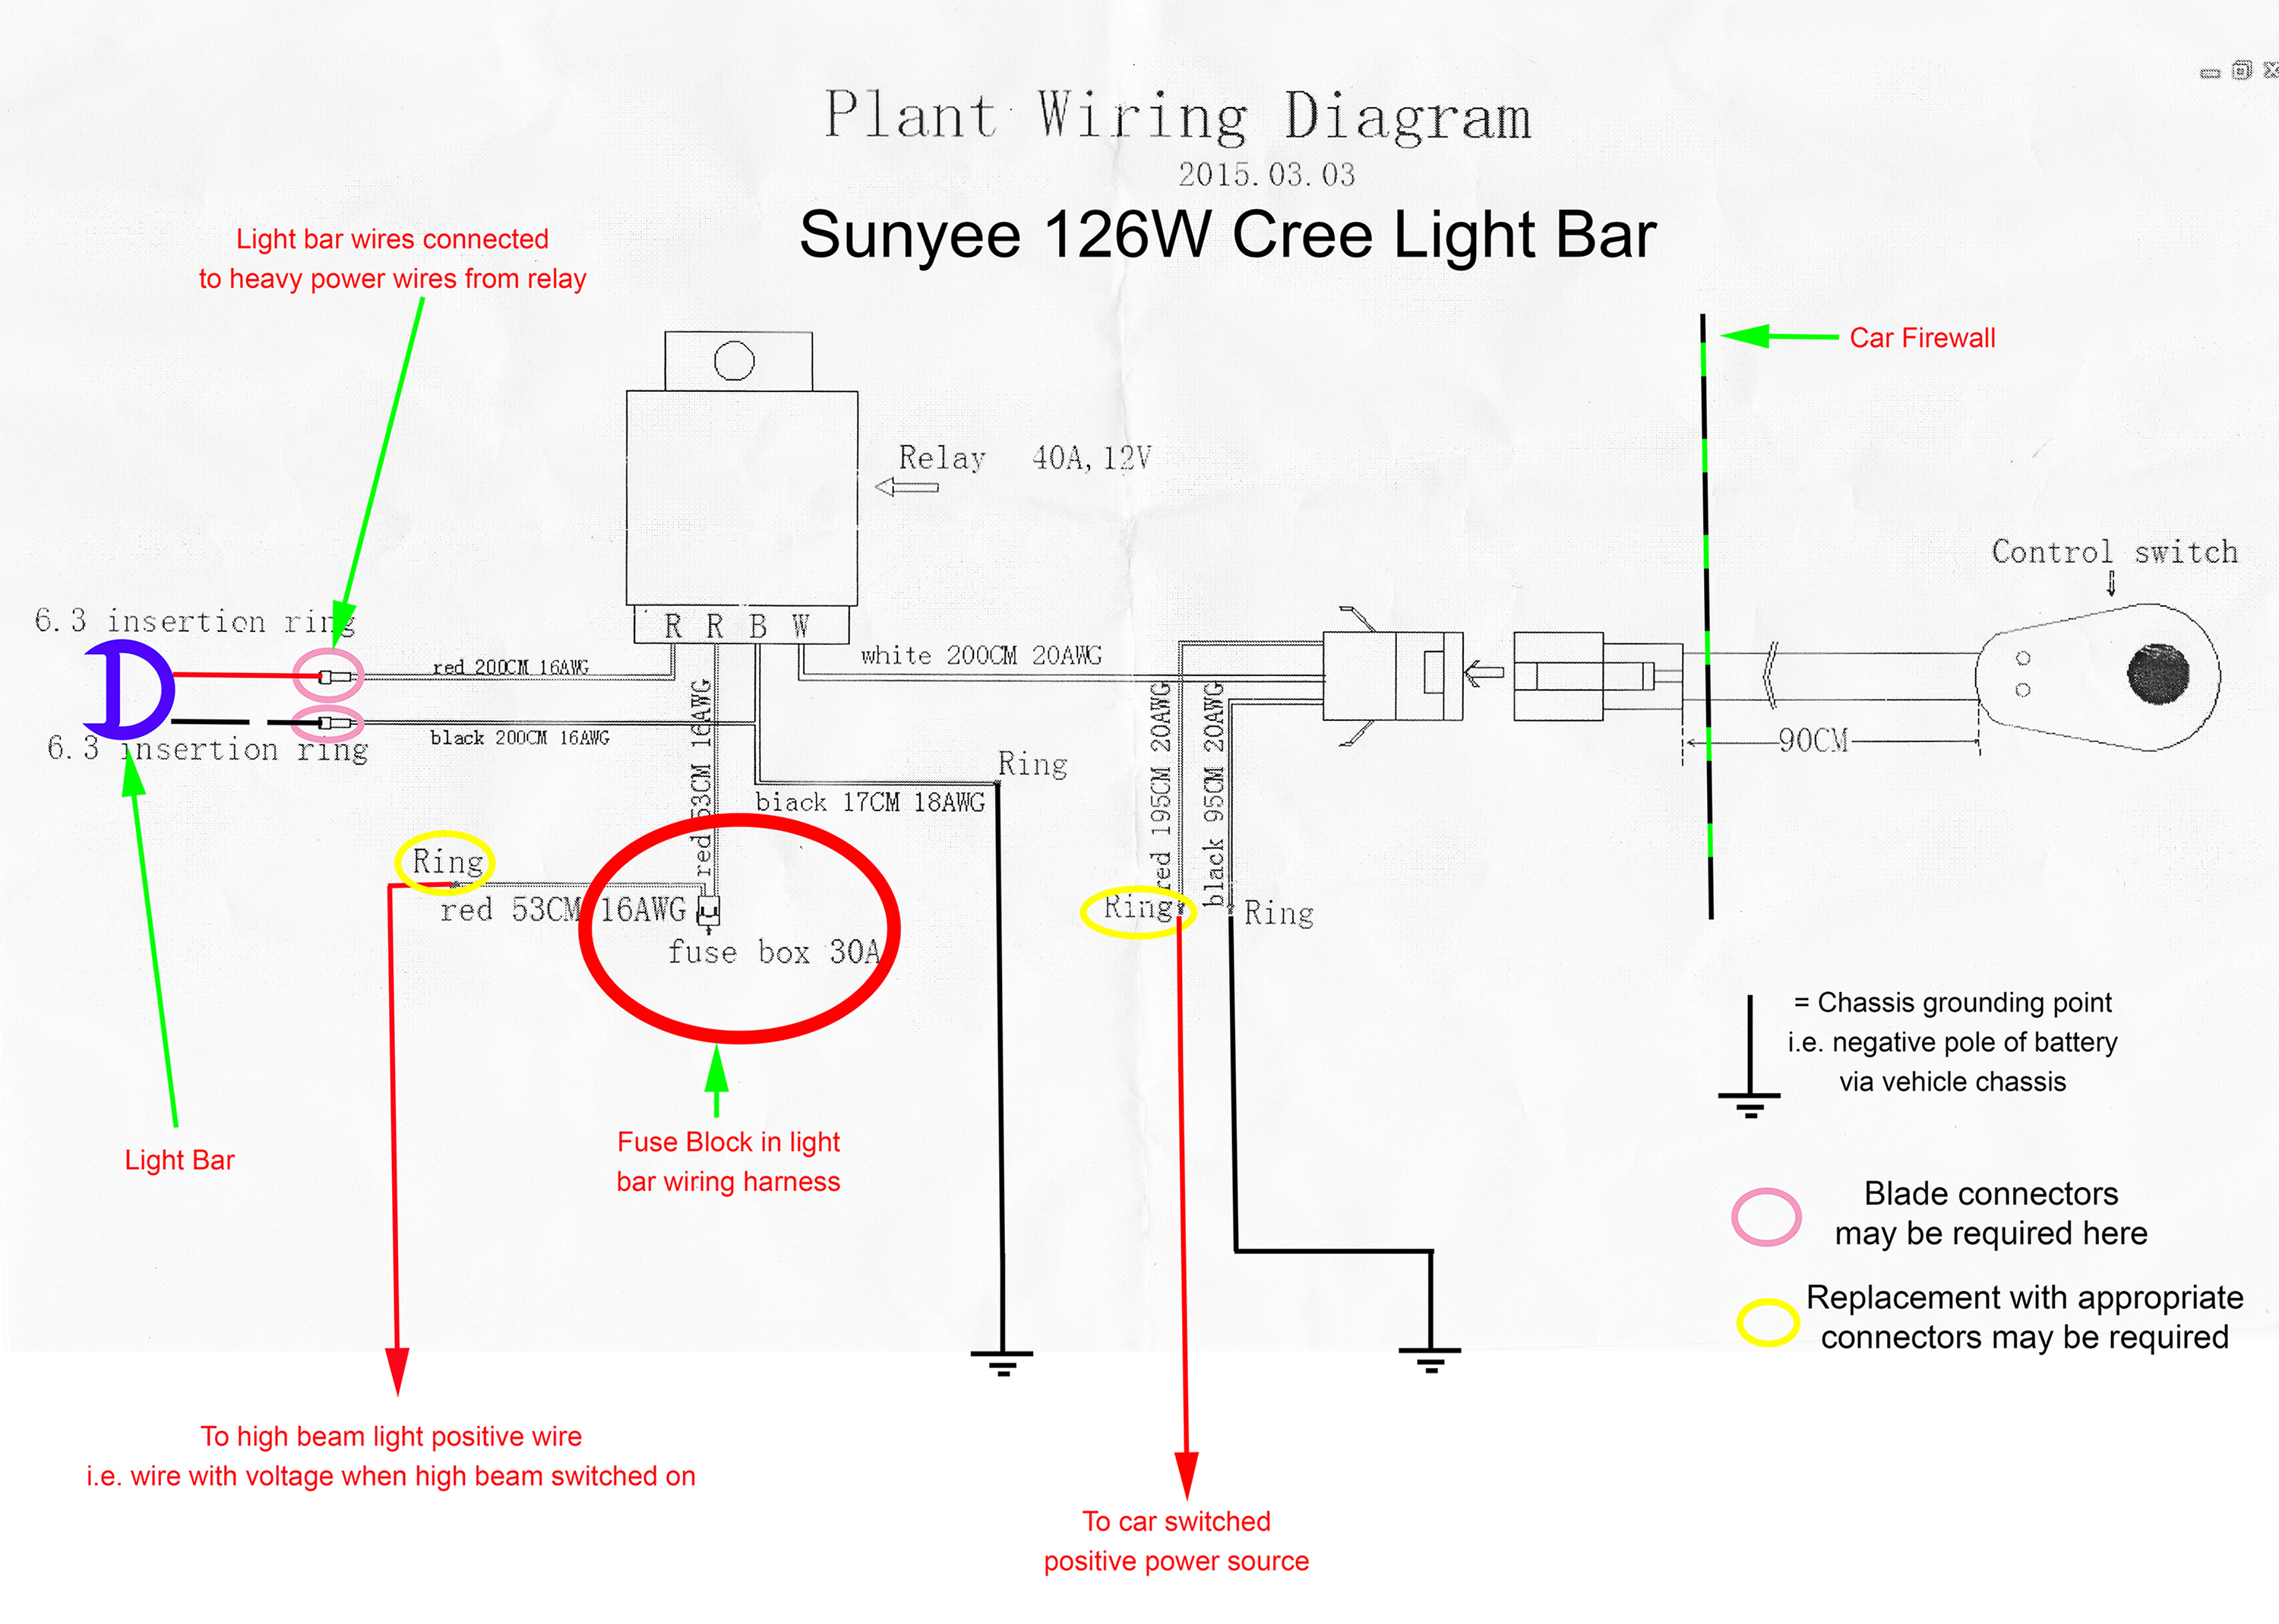 Install Sunyee Cree 126W Light Bar - Sg Ii Forester - Page 3 - Light Bar Wiring Diagram